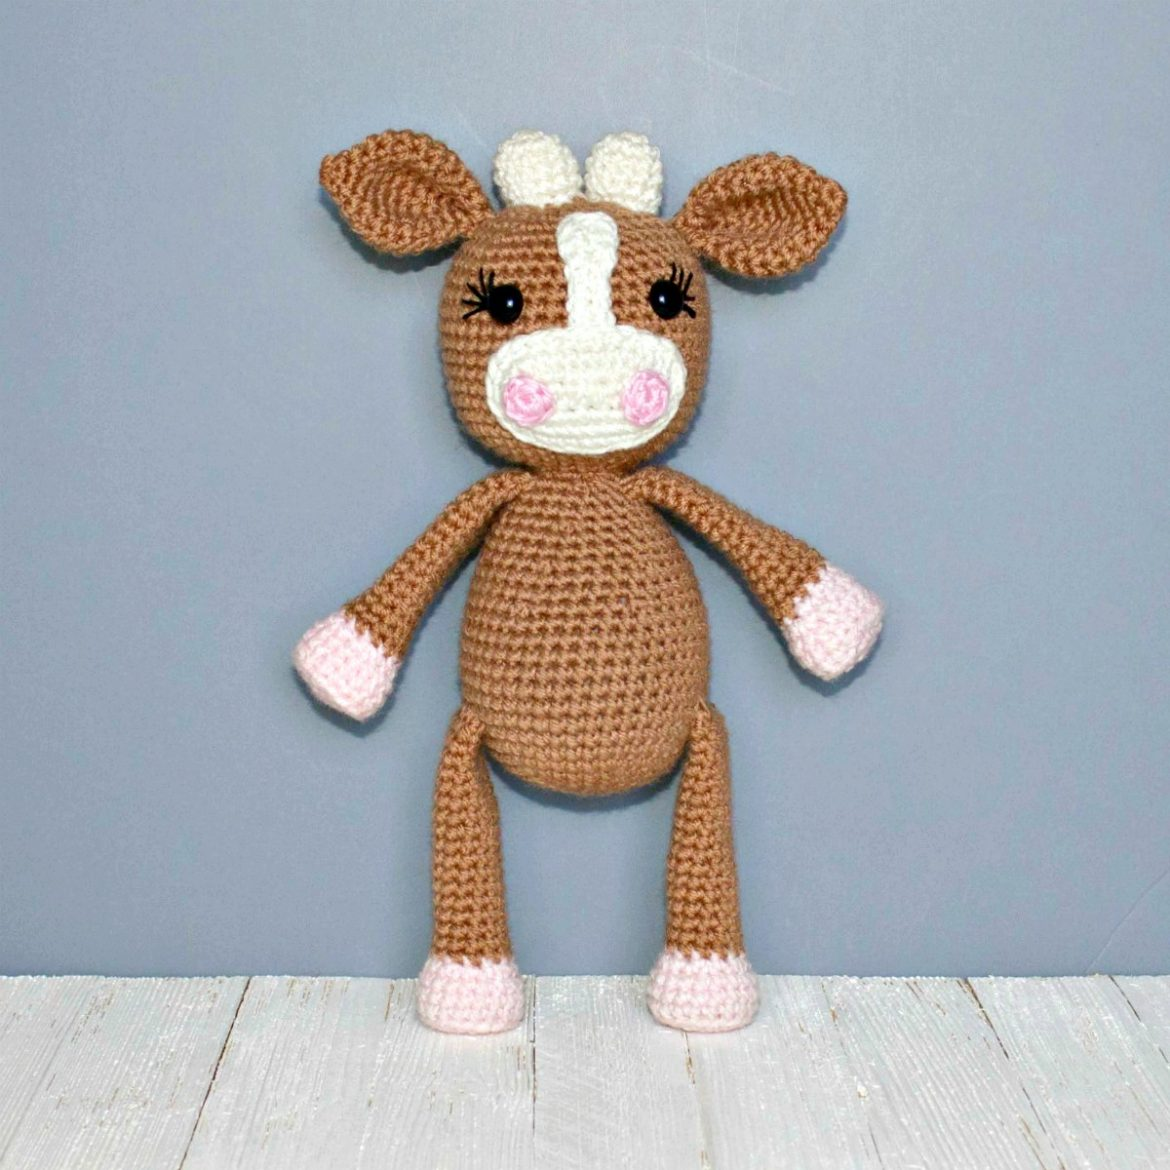 Amigurumi Cow - A Free Crochet Pattern - Grace and Yarn | 1170x1170